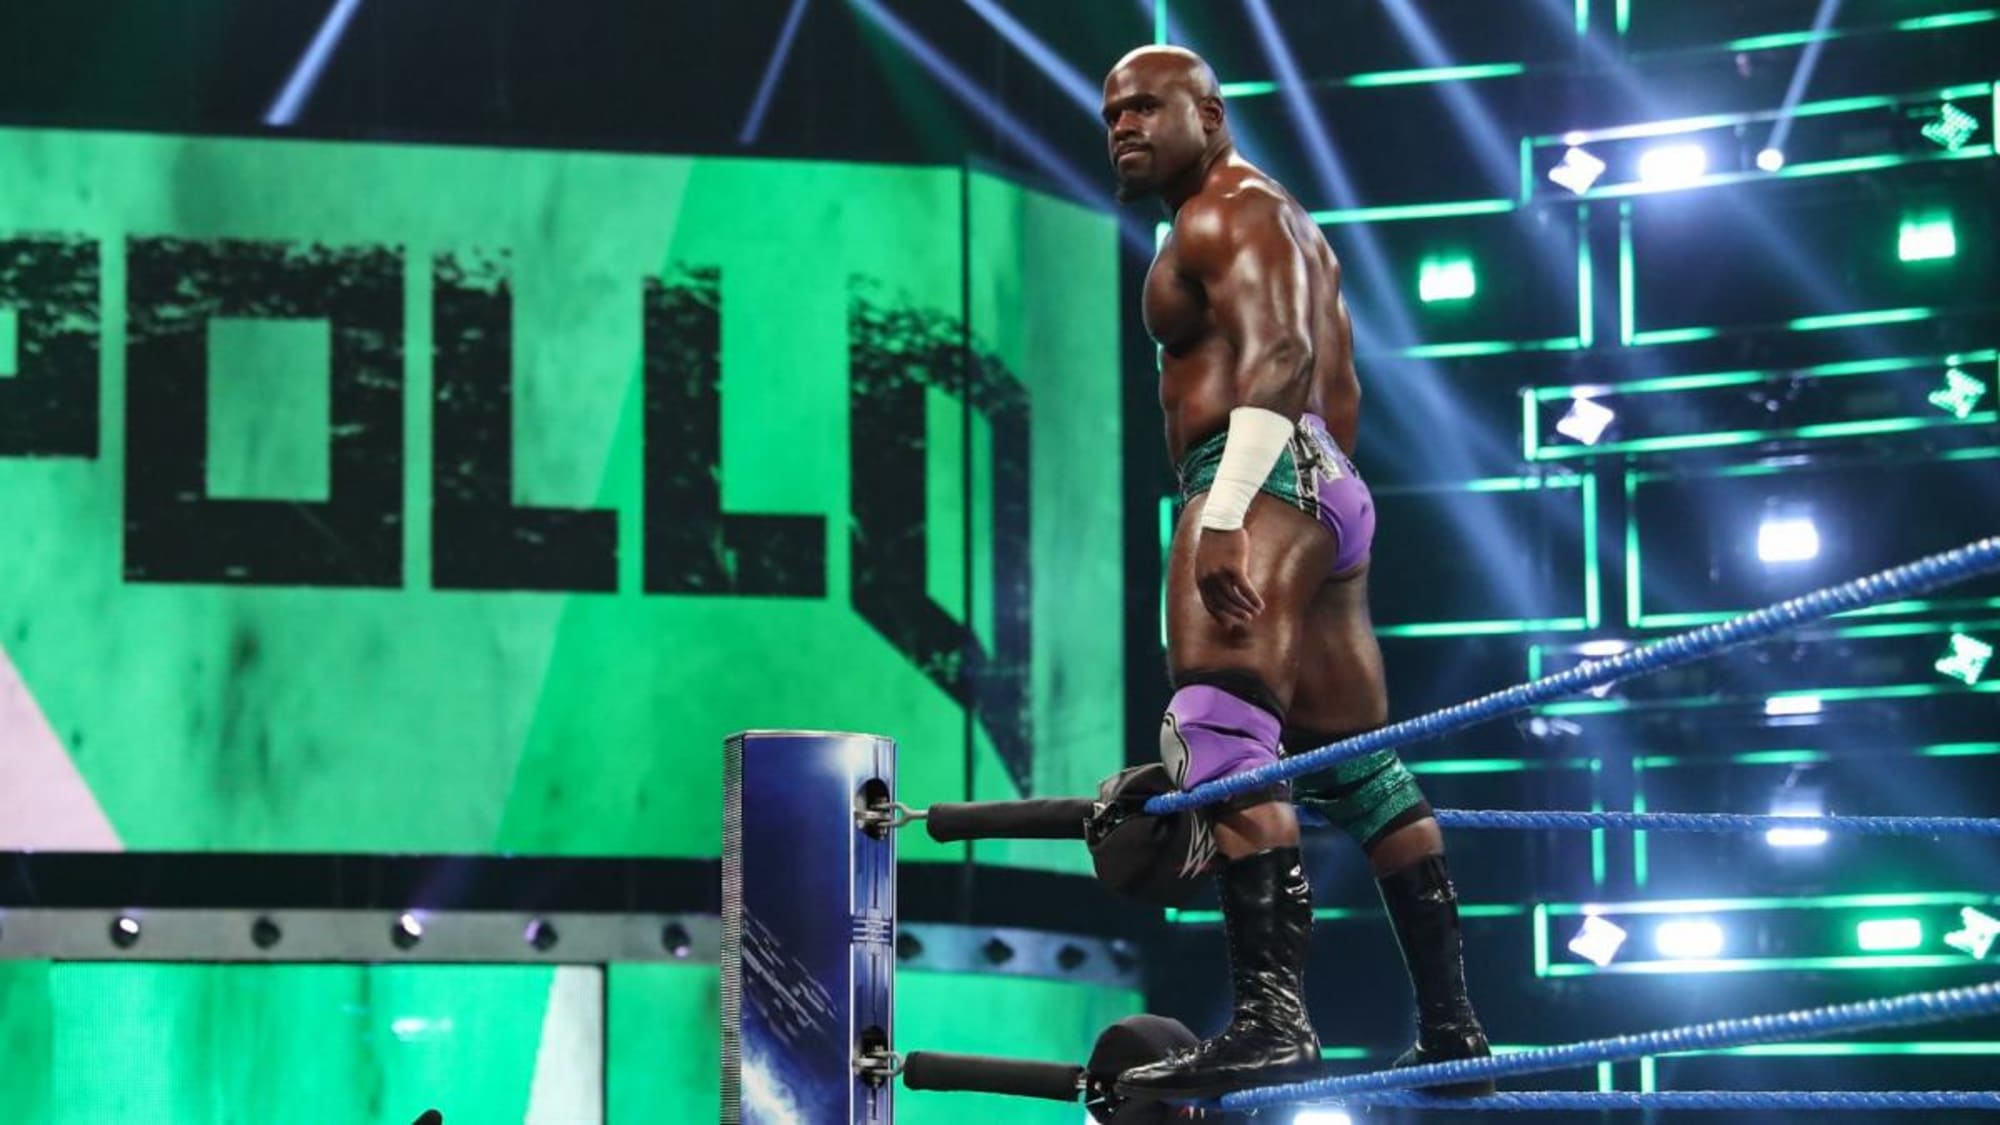 Apollo Crews on fighting frustration in WWE, capitalizing on opportunities